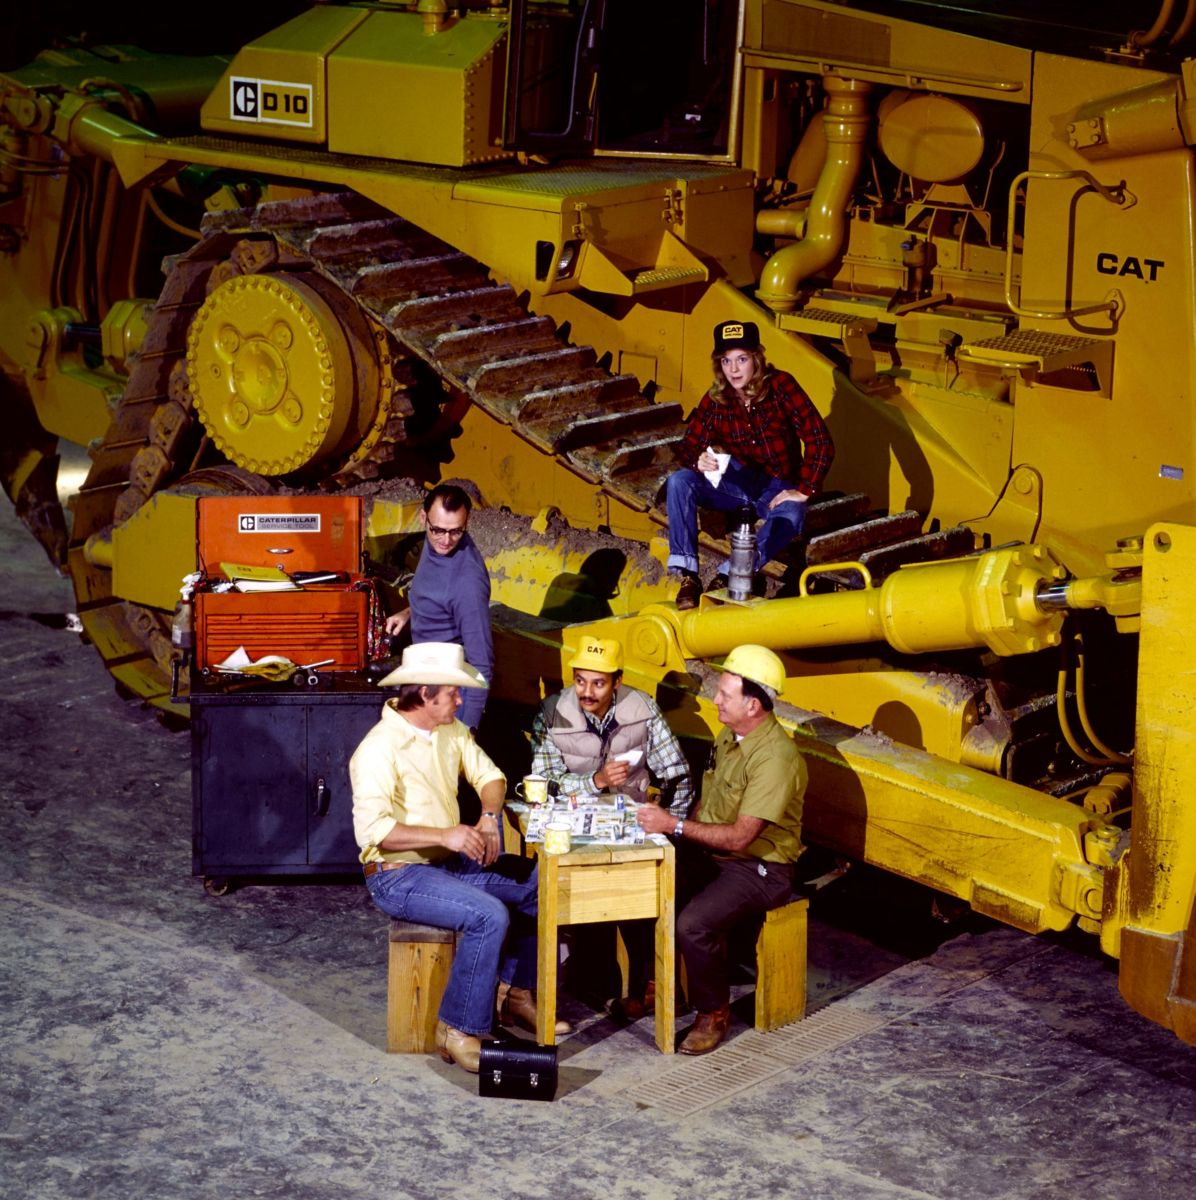 Caterpillar dealer service shop, 1982.